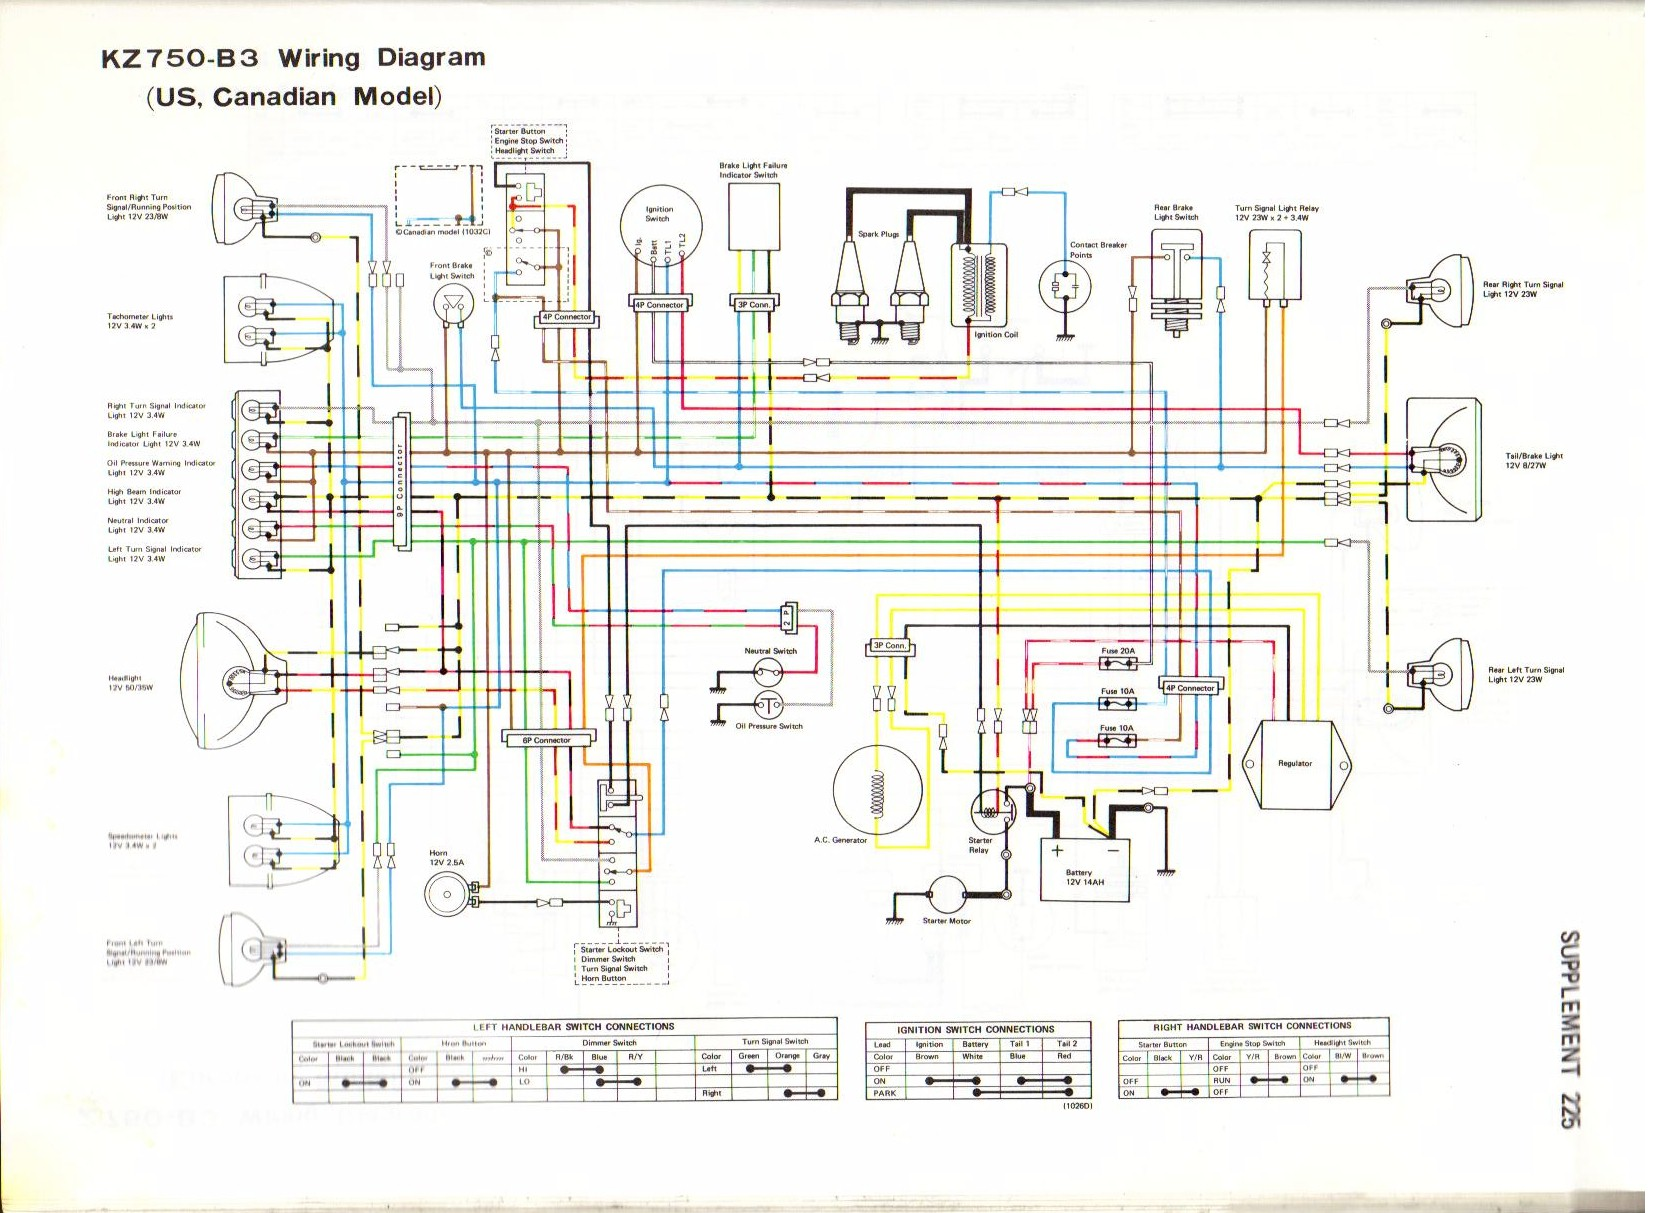 kz750b3 service manuals kz750 twin kz750 twins com kawasaki z750 wiring diagram at creativeand.co